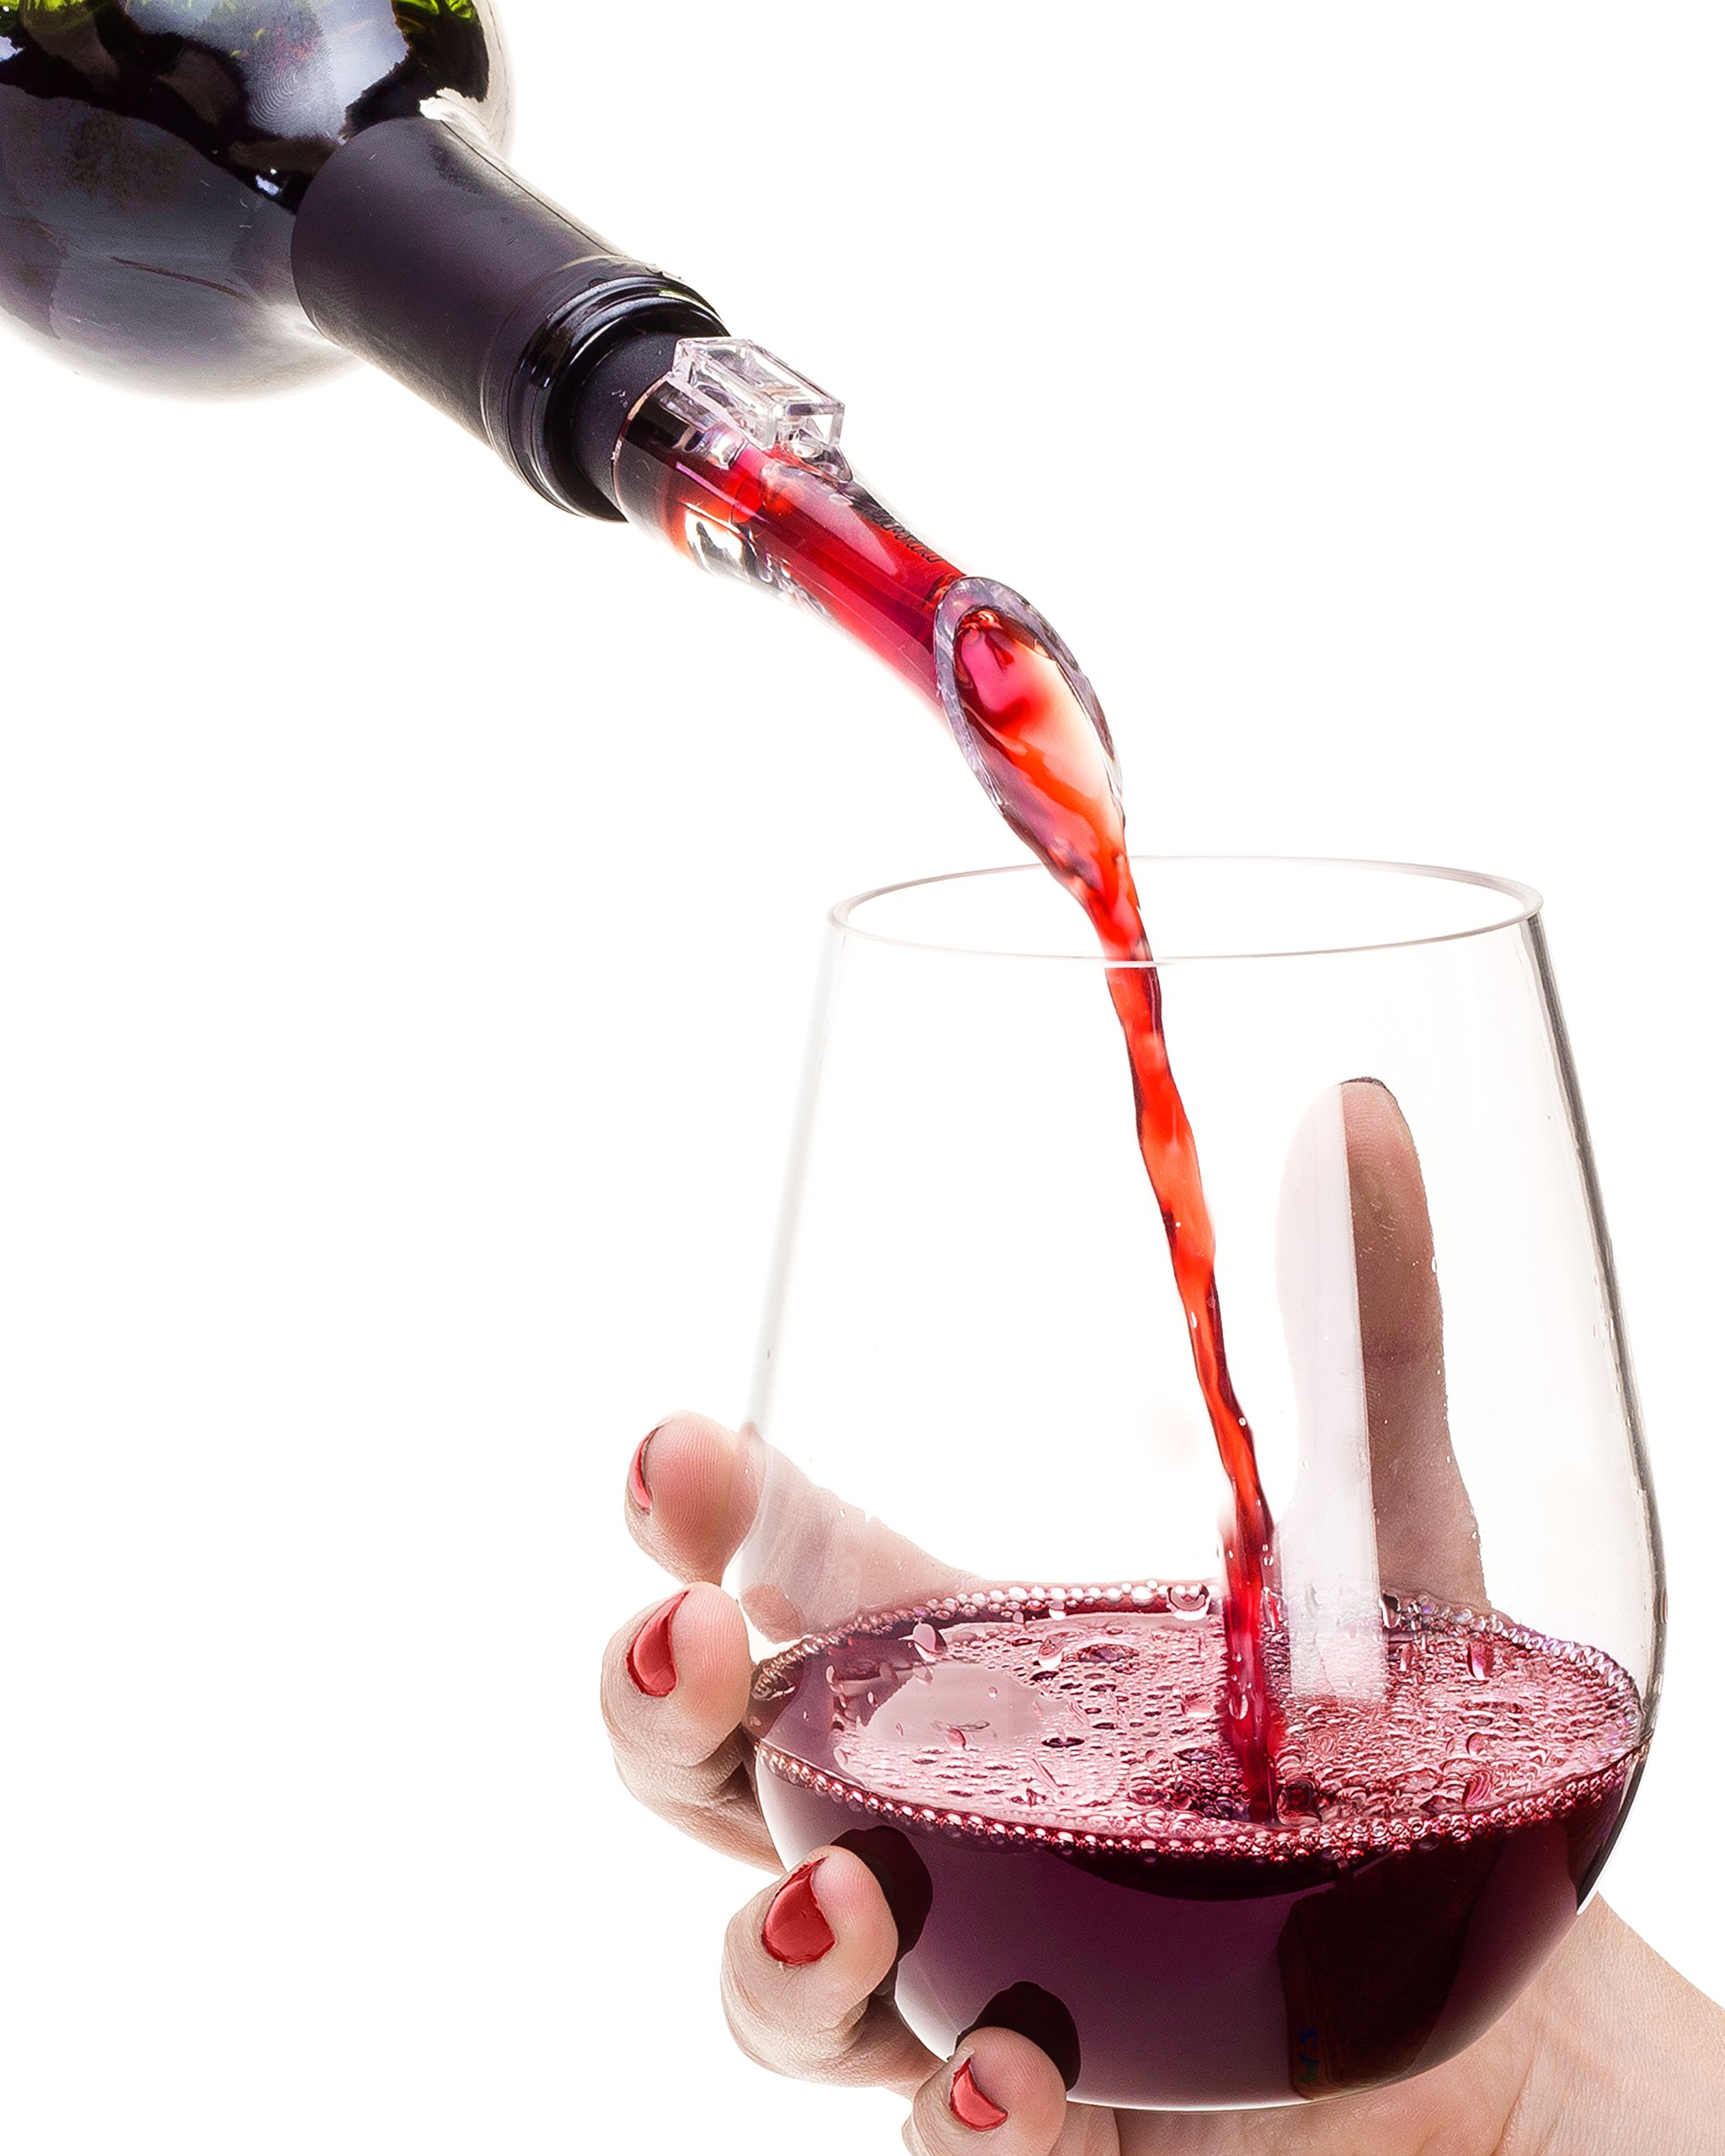 Best Wine Aerator Pourer for Red Wine & White Wine, Unique Gift Idea For Women, Men, Her, Him, Anniversary, Birthday, Couples, Friendship, Wine Gift, Compare to Vintorio Brand